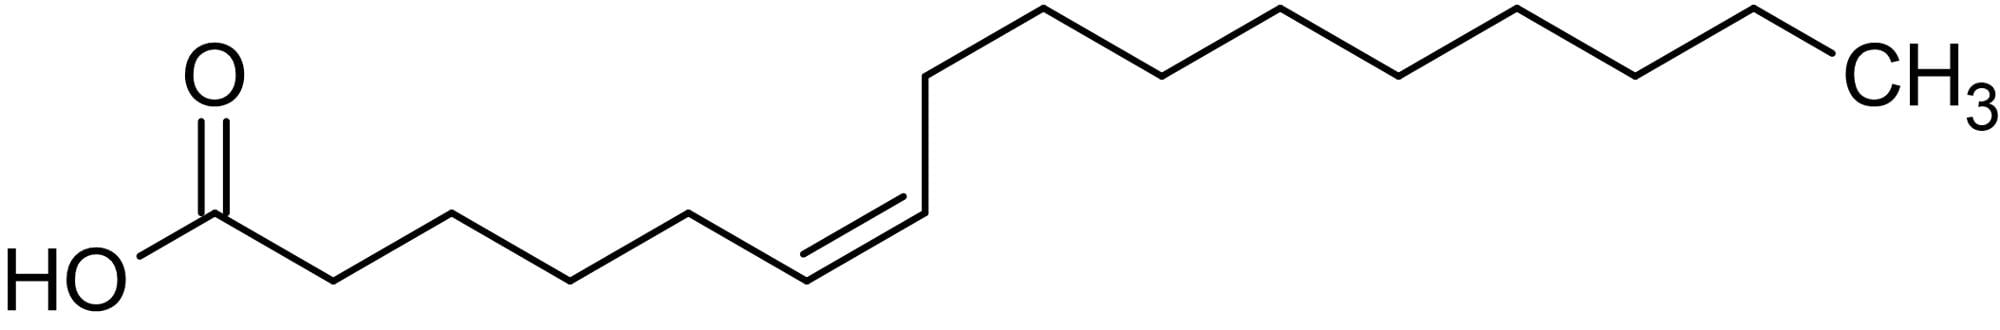 Chemical Structure - cis-6-Hexadecenoic acid, Monounsaturated fatty acid (ab143911)